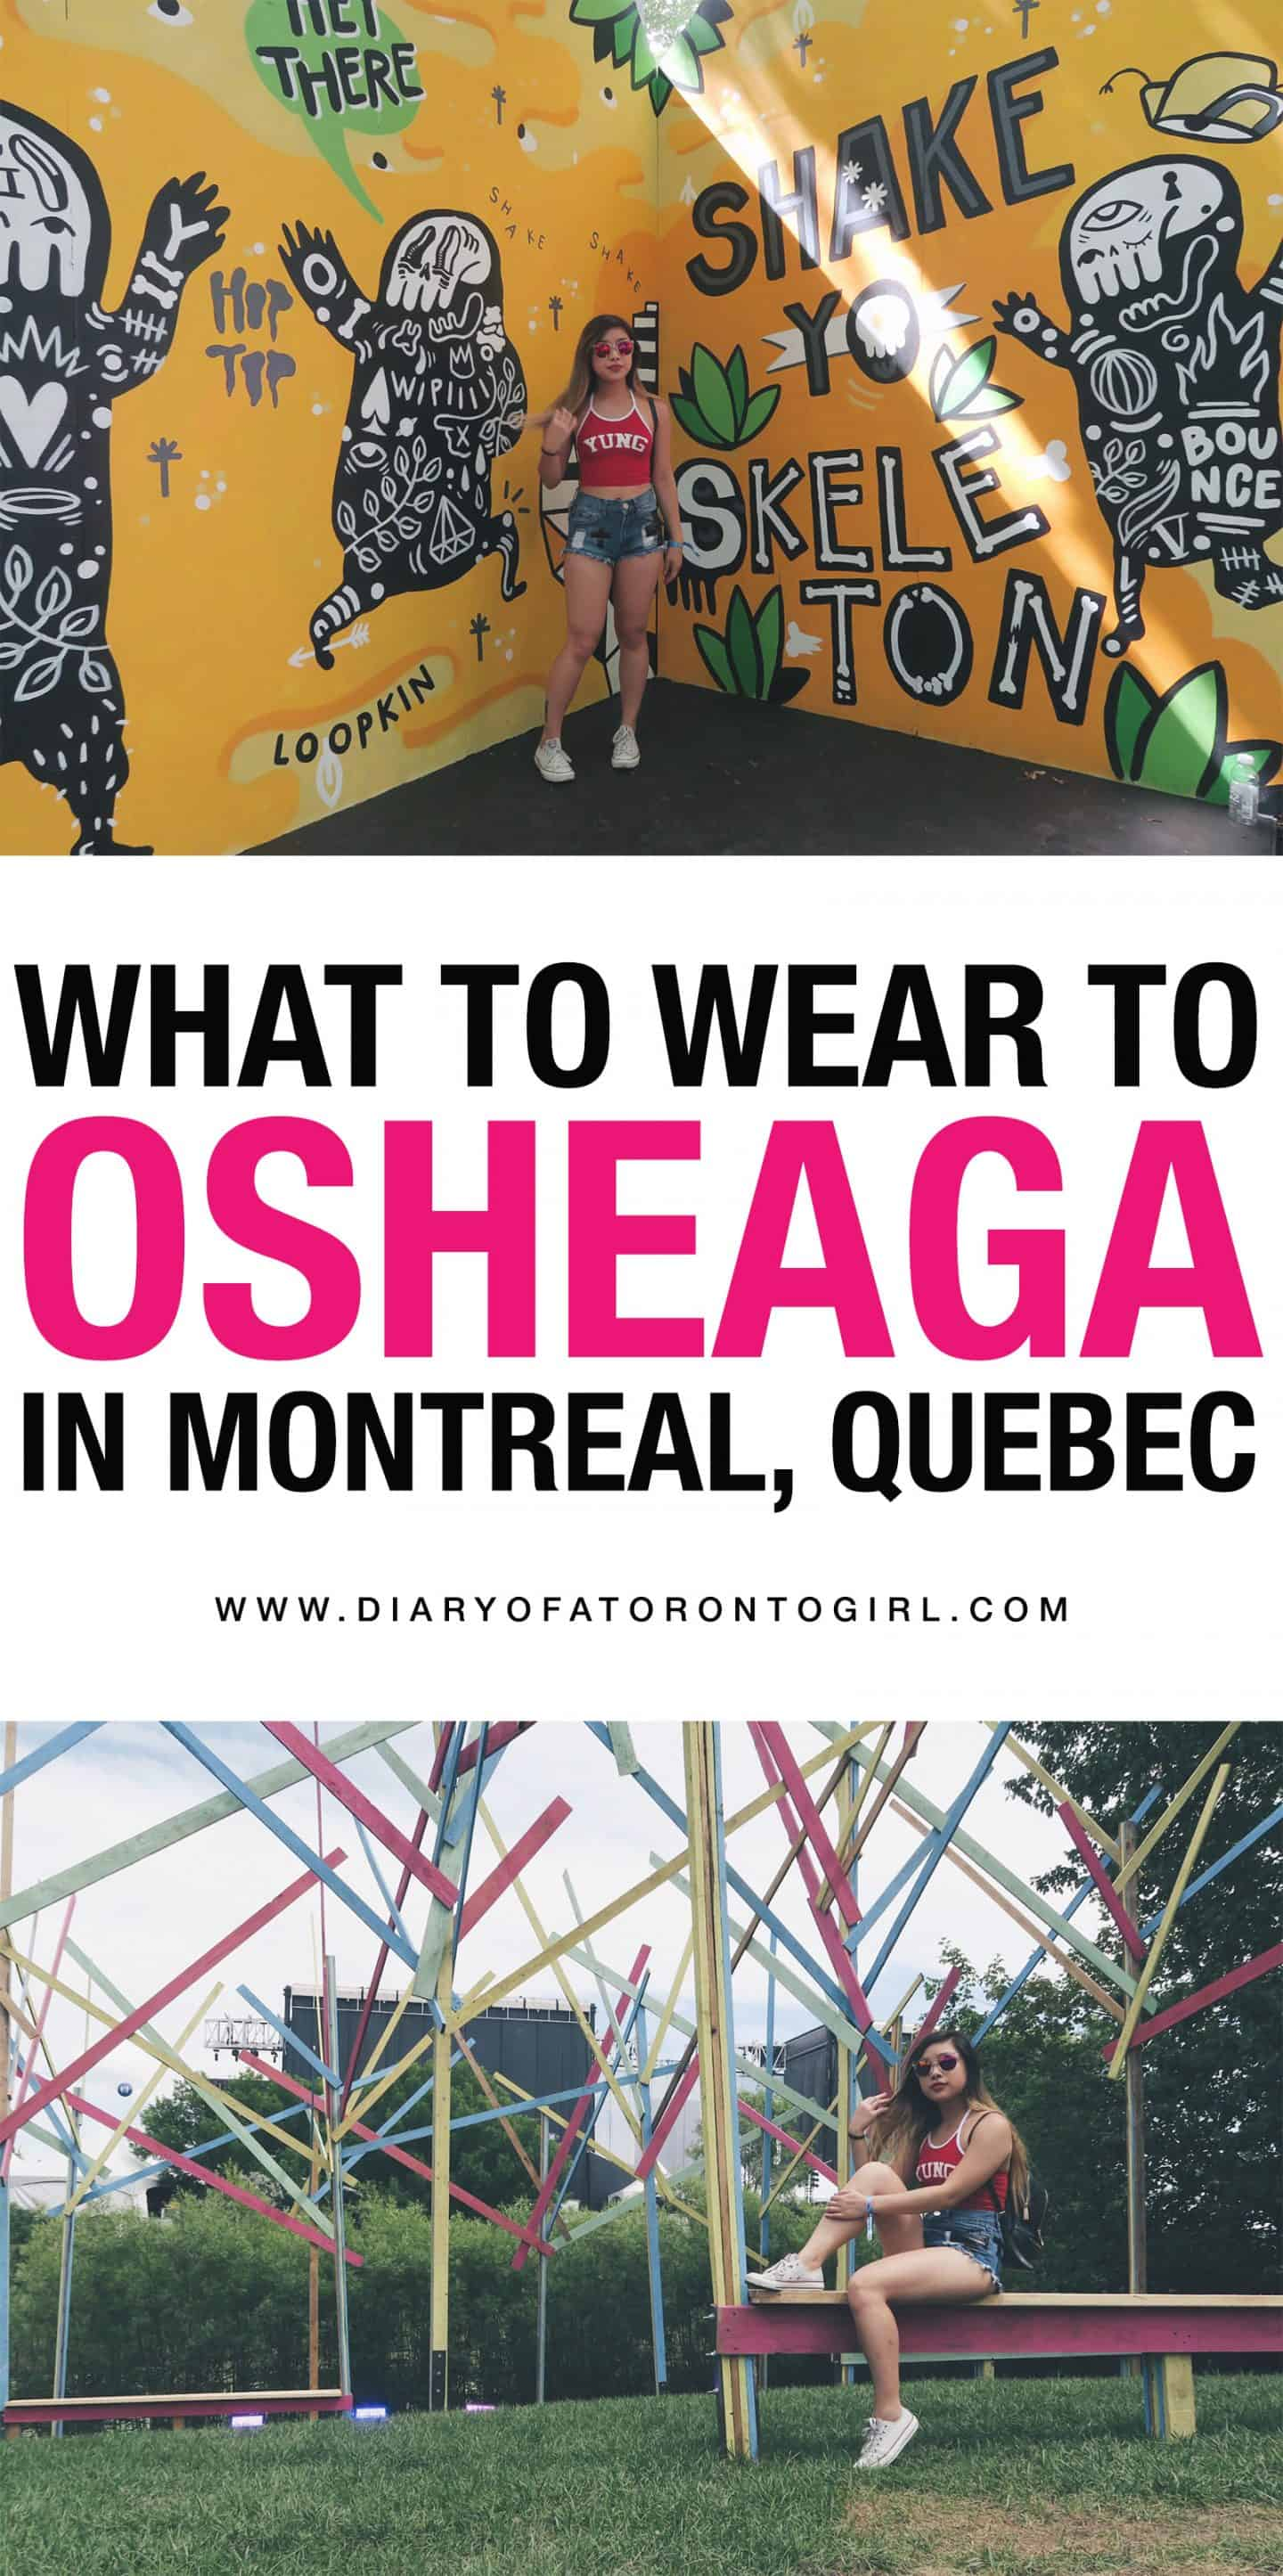 Looking for Osheaga outfit ideas? Here is some inspiration on what to wear to the Osheaga Music Festival in Montreal, Quebec!